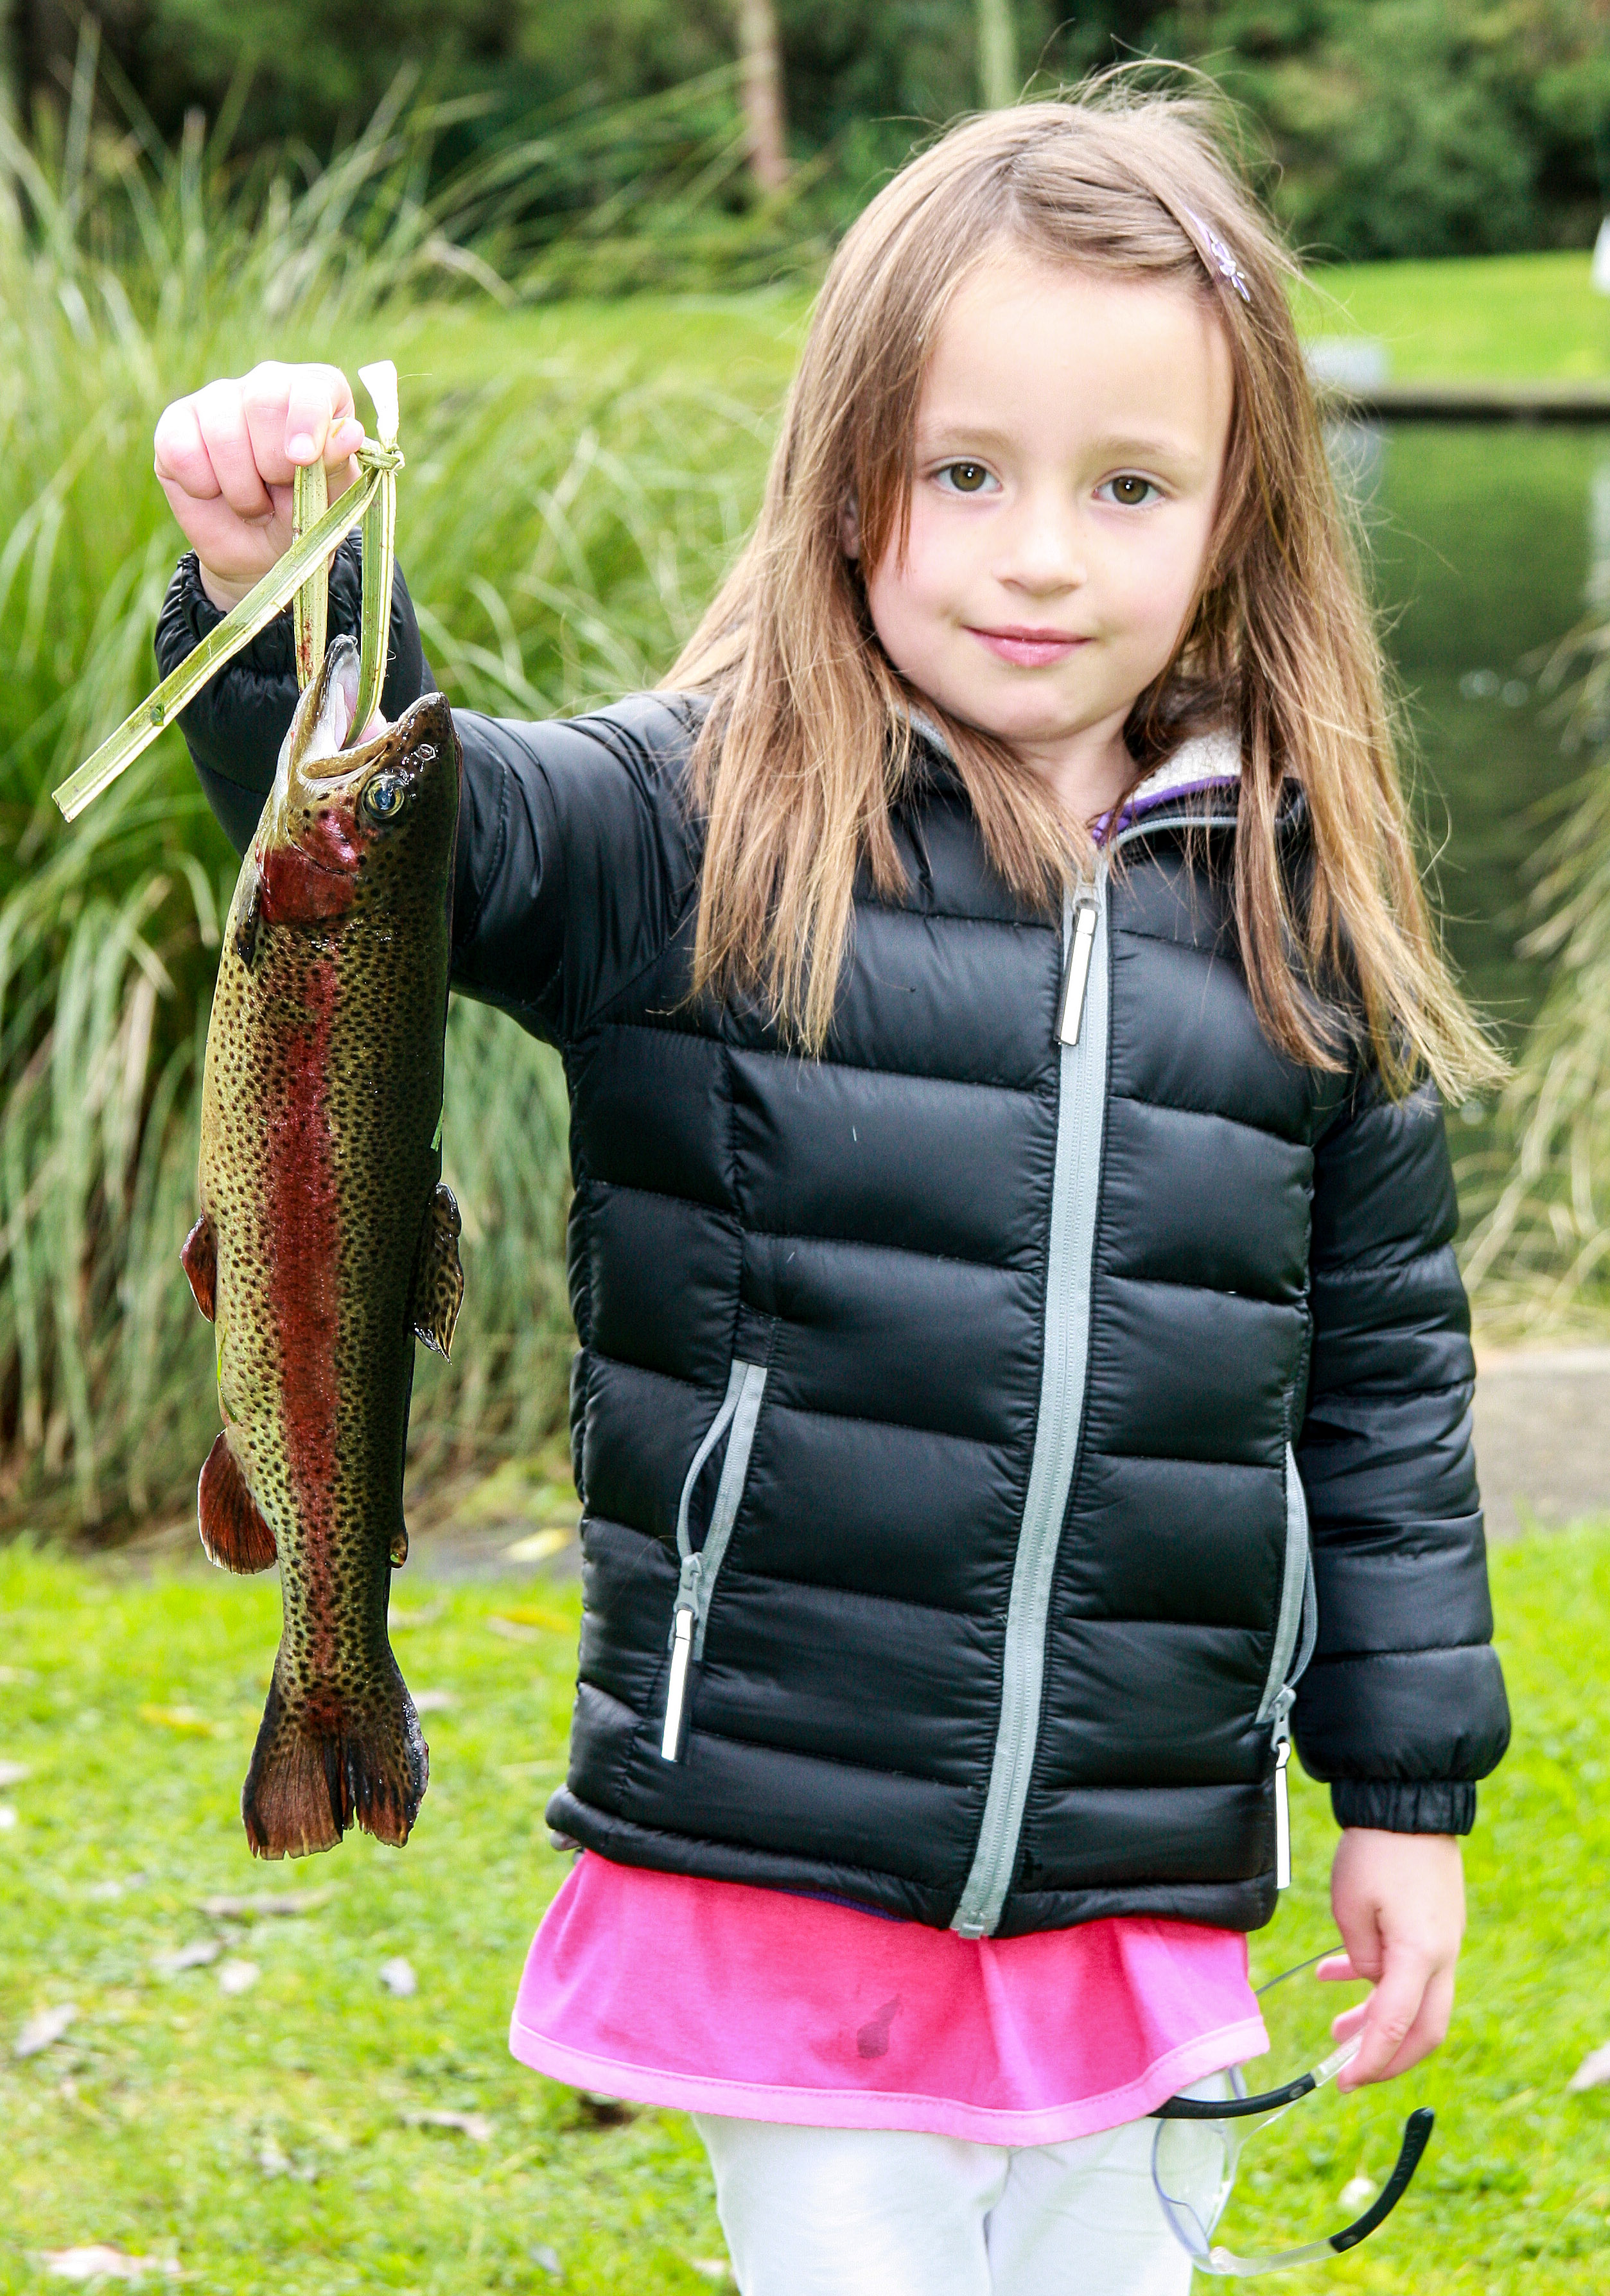 Kids fish out Sept 2017